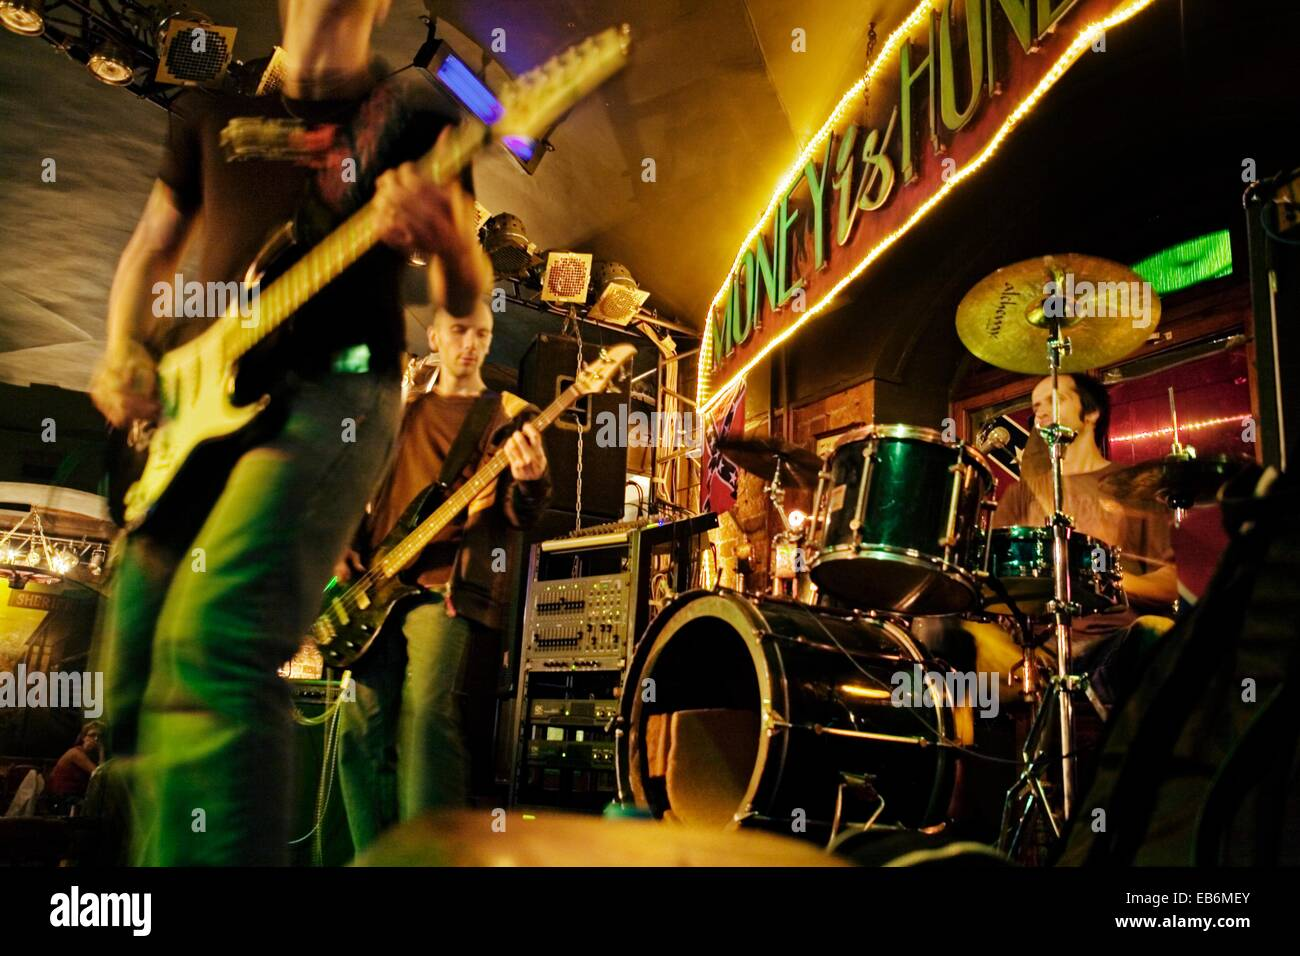 money honey bar rockabilly concert street spraksin dvor 14 st stock photo 75750499 alamy. Black Bedroom Furniture Sets. Home Design Ideas